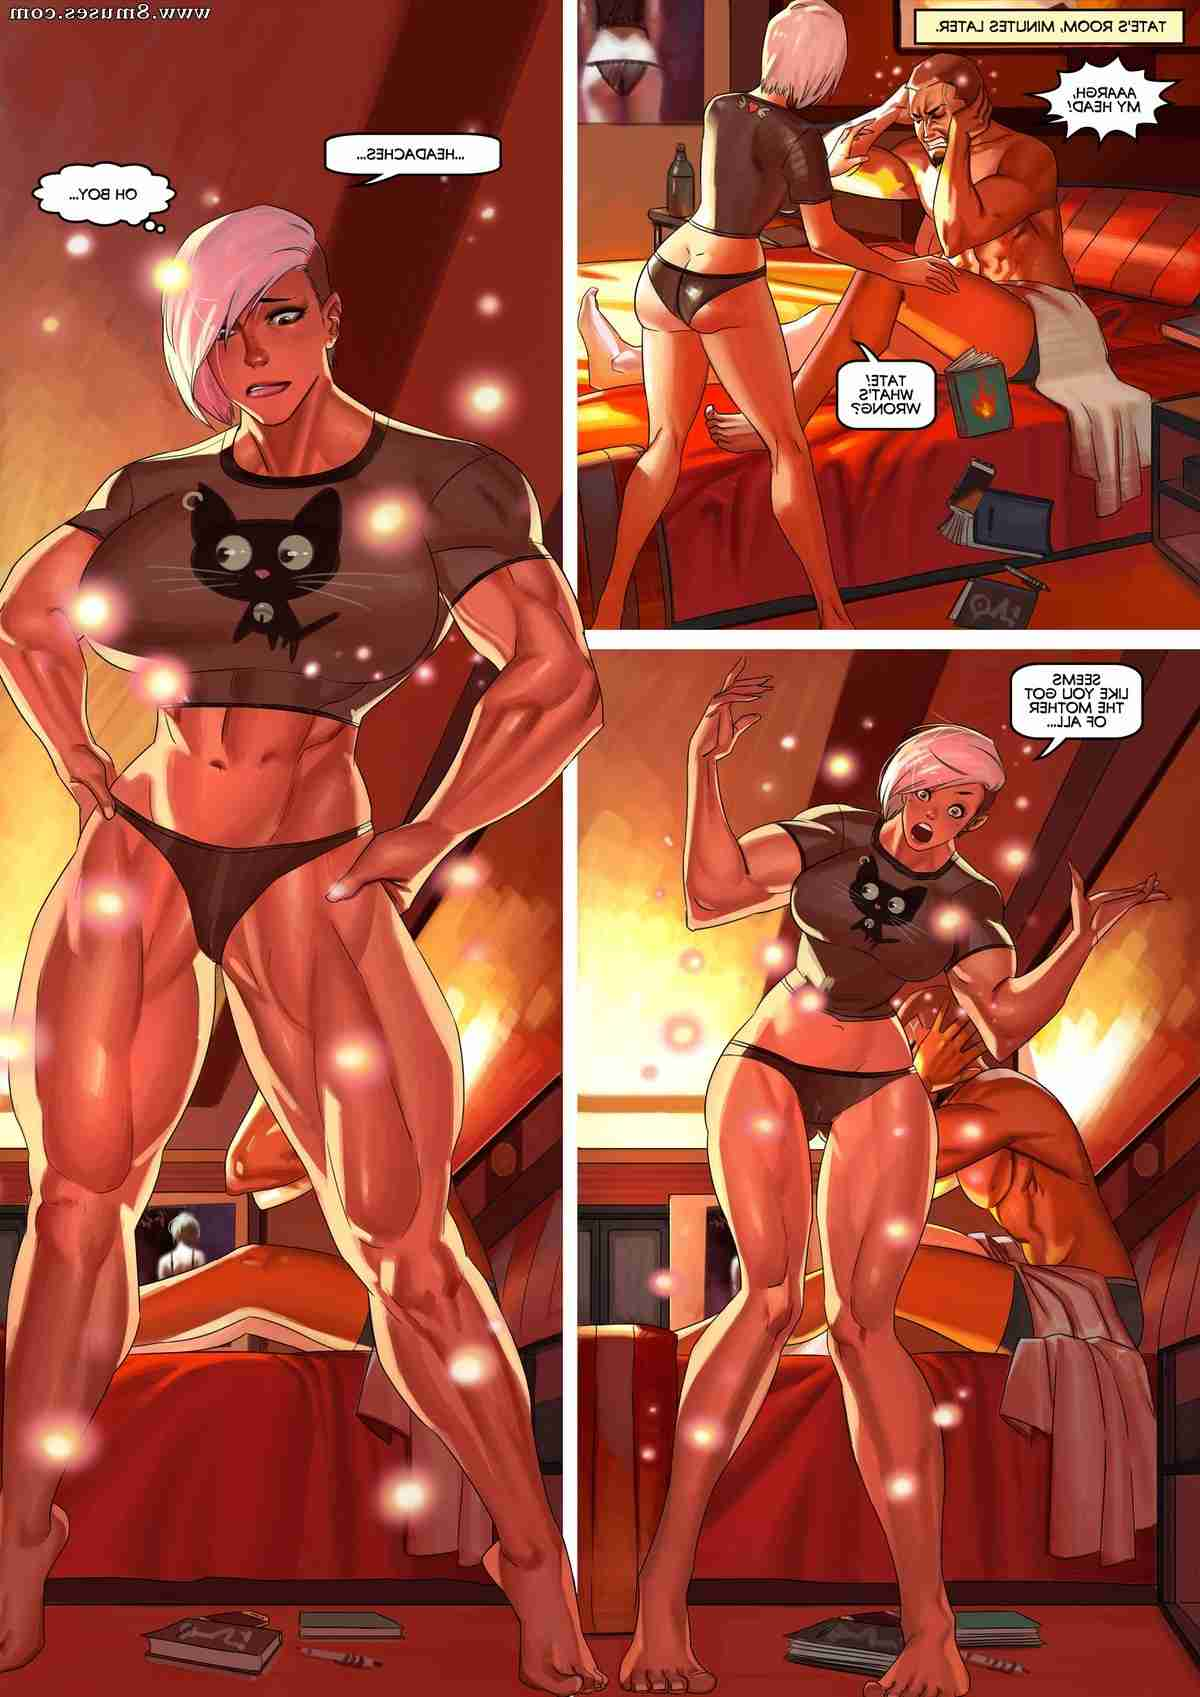 MuscleFan-Comics/The-Ever-Changing-World The_Ever-Changing_World__8muses_-_Sex_and_Porn_Comics_18.jpg